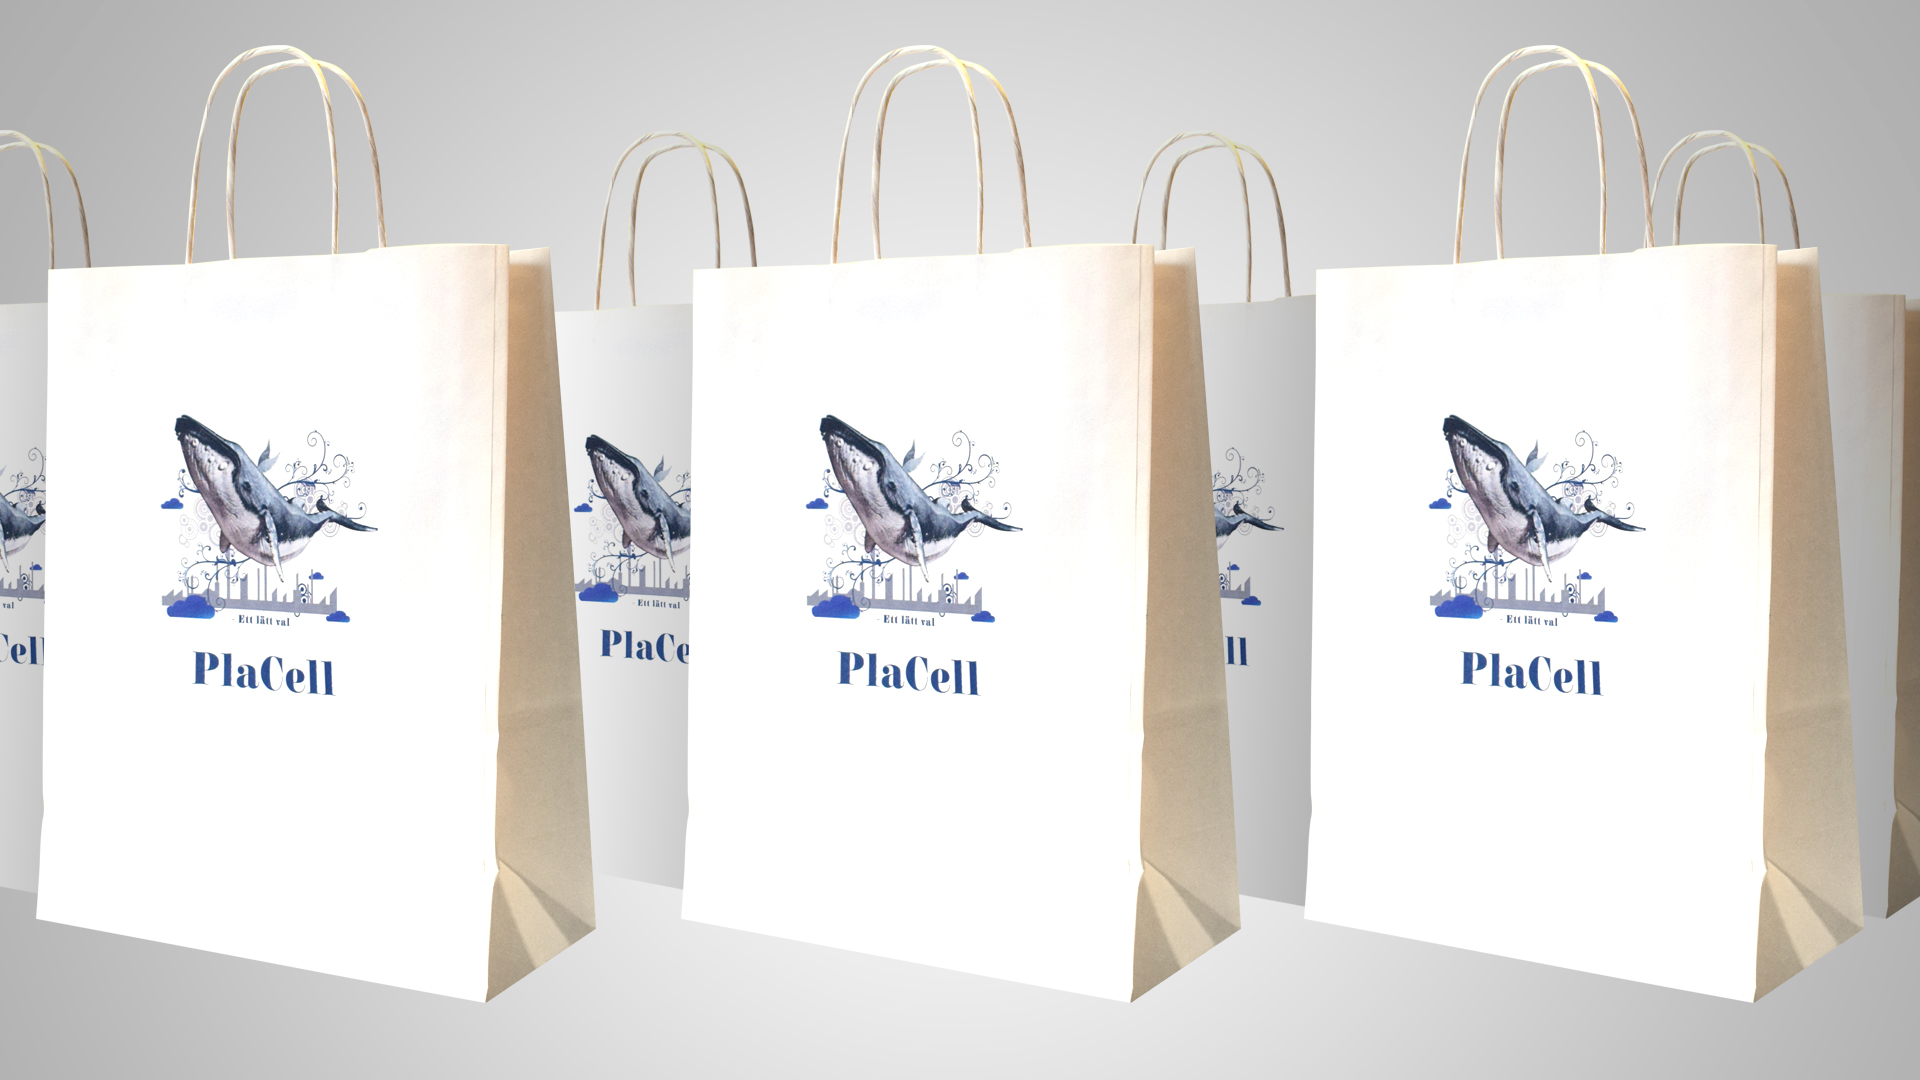 Placell_pase-1.jpg